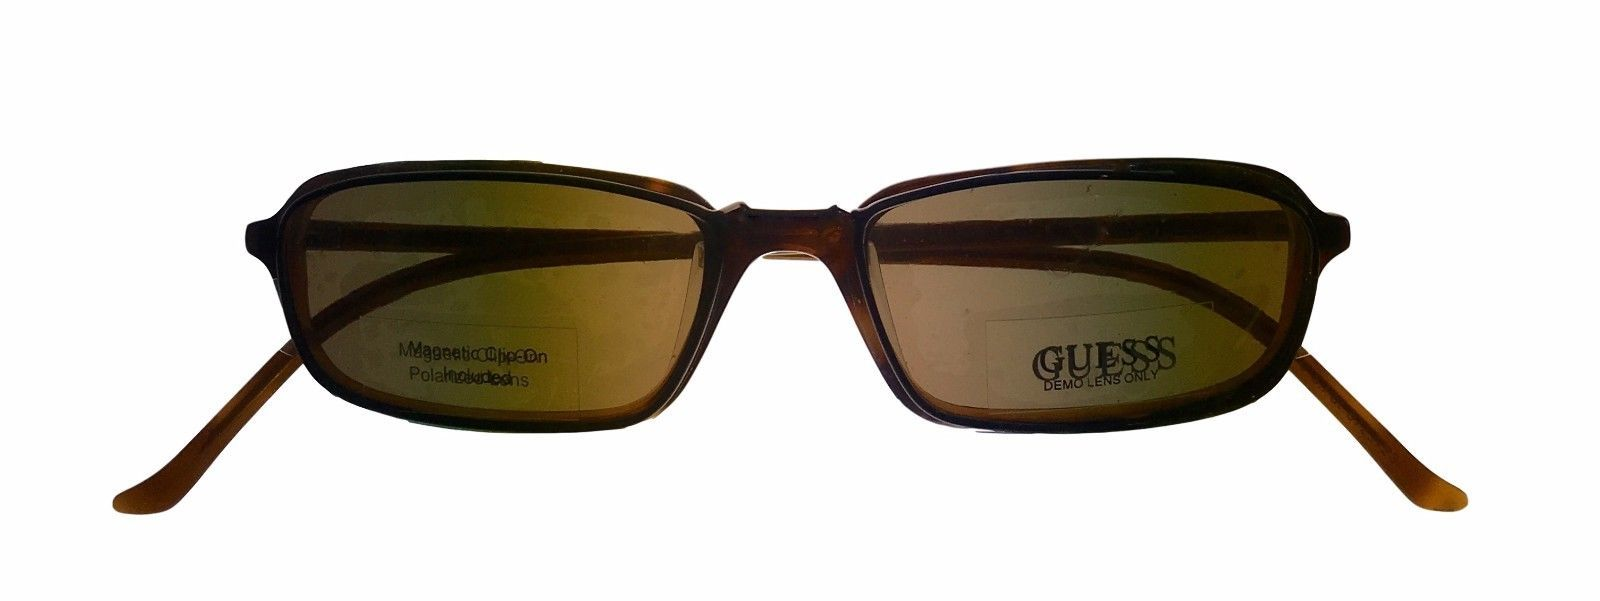 Guess Ophthalmic Mens Eyeglass Plastic Rectangle 1331 Demi Amber image 6